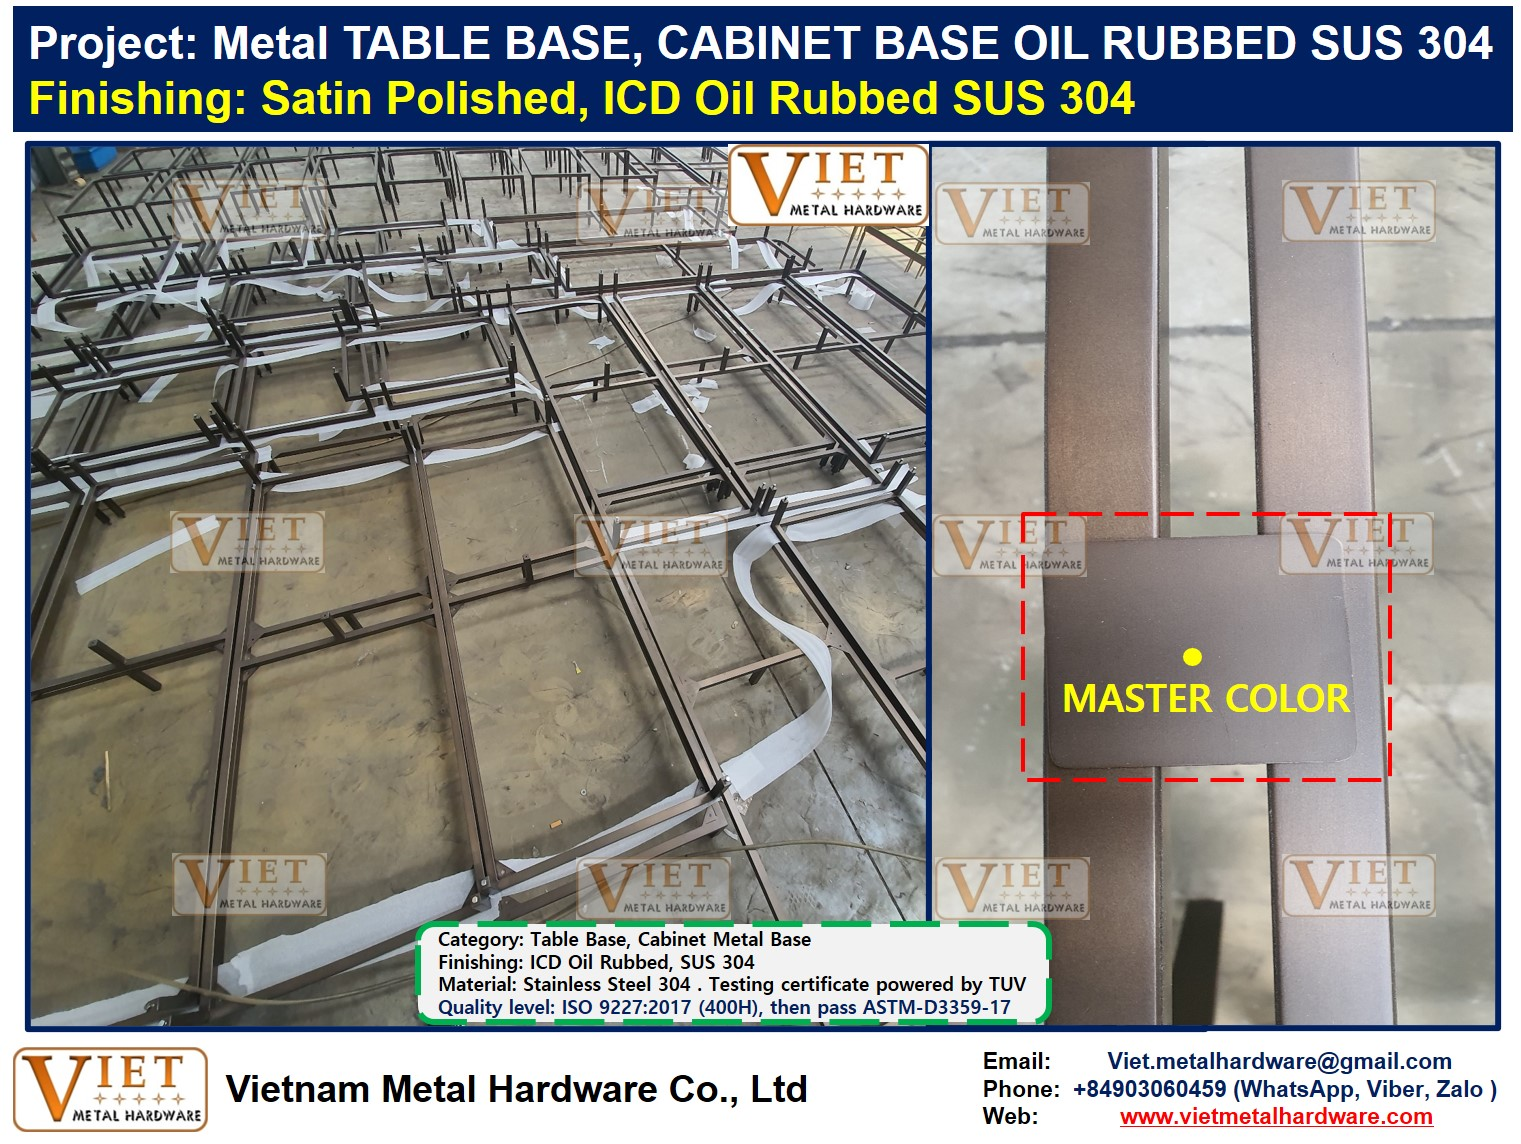 Metal TABLE BASE, CABINET BASE OIL RUBBED SUS 304